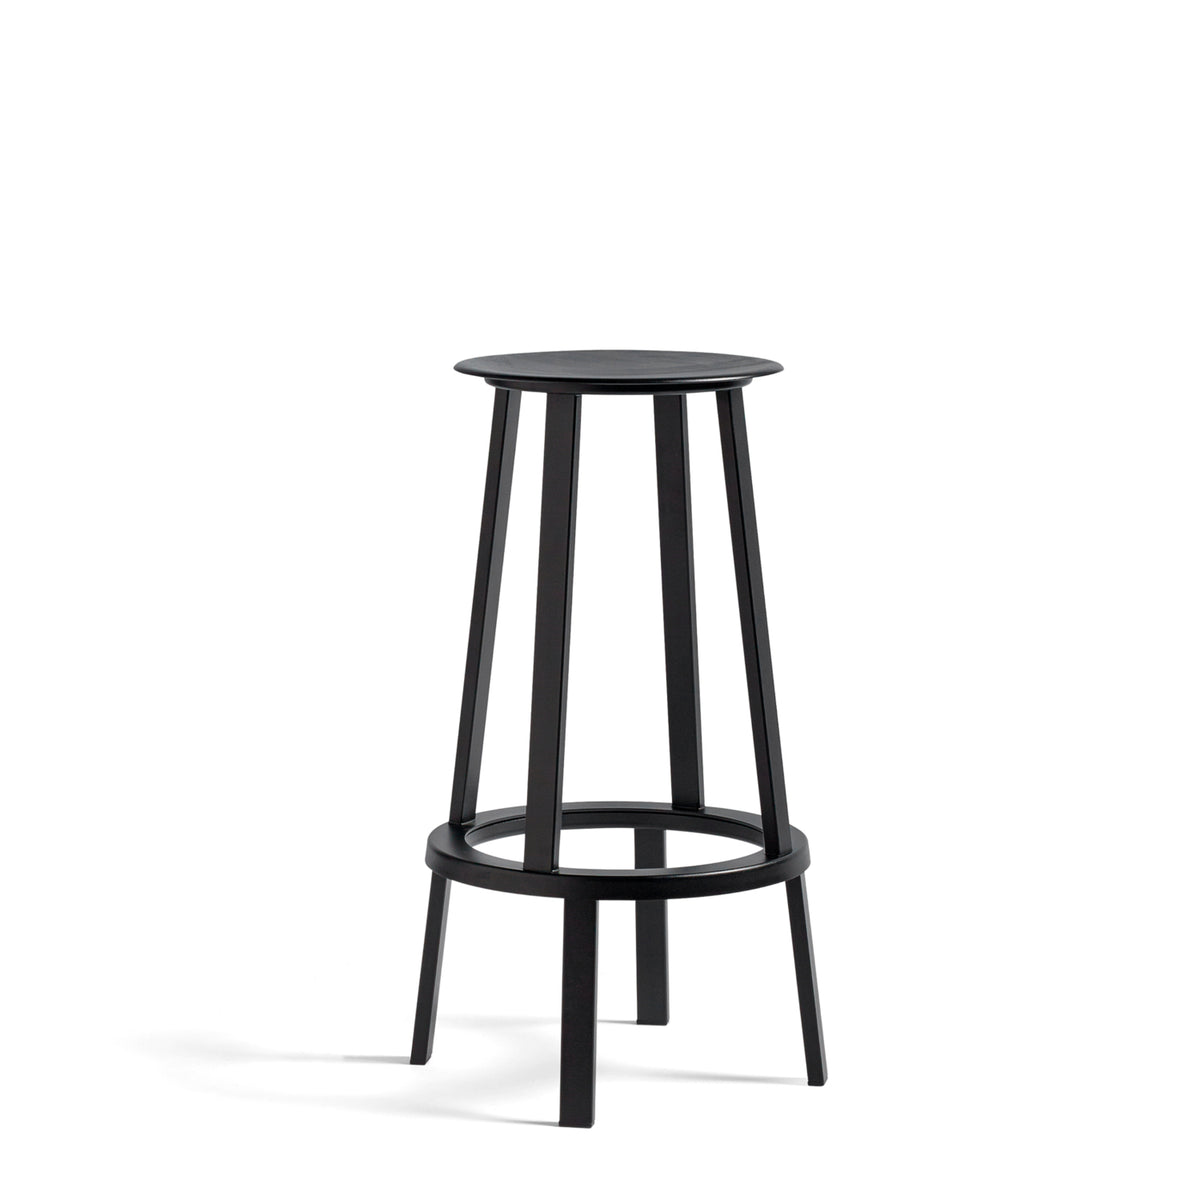 HAY Office Revolver Bar Stool Black Revolver